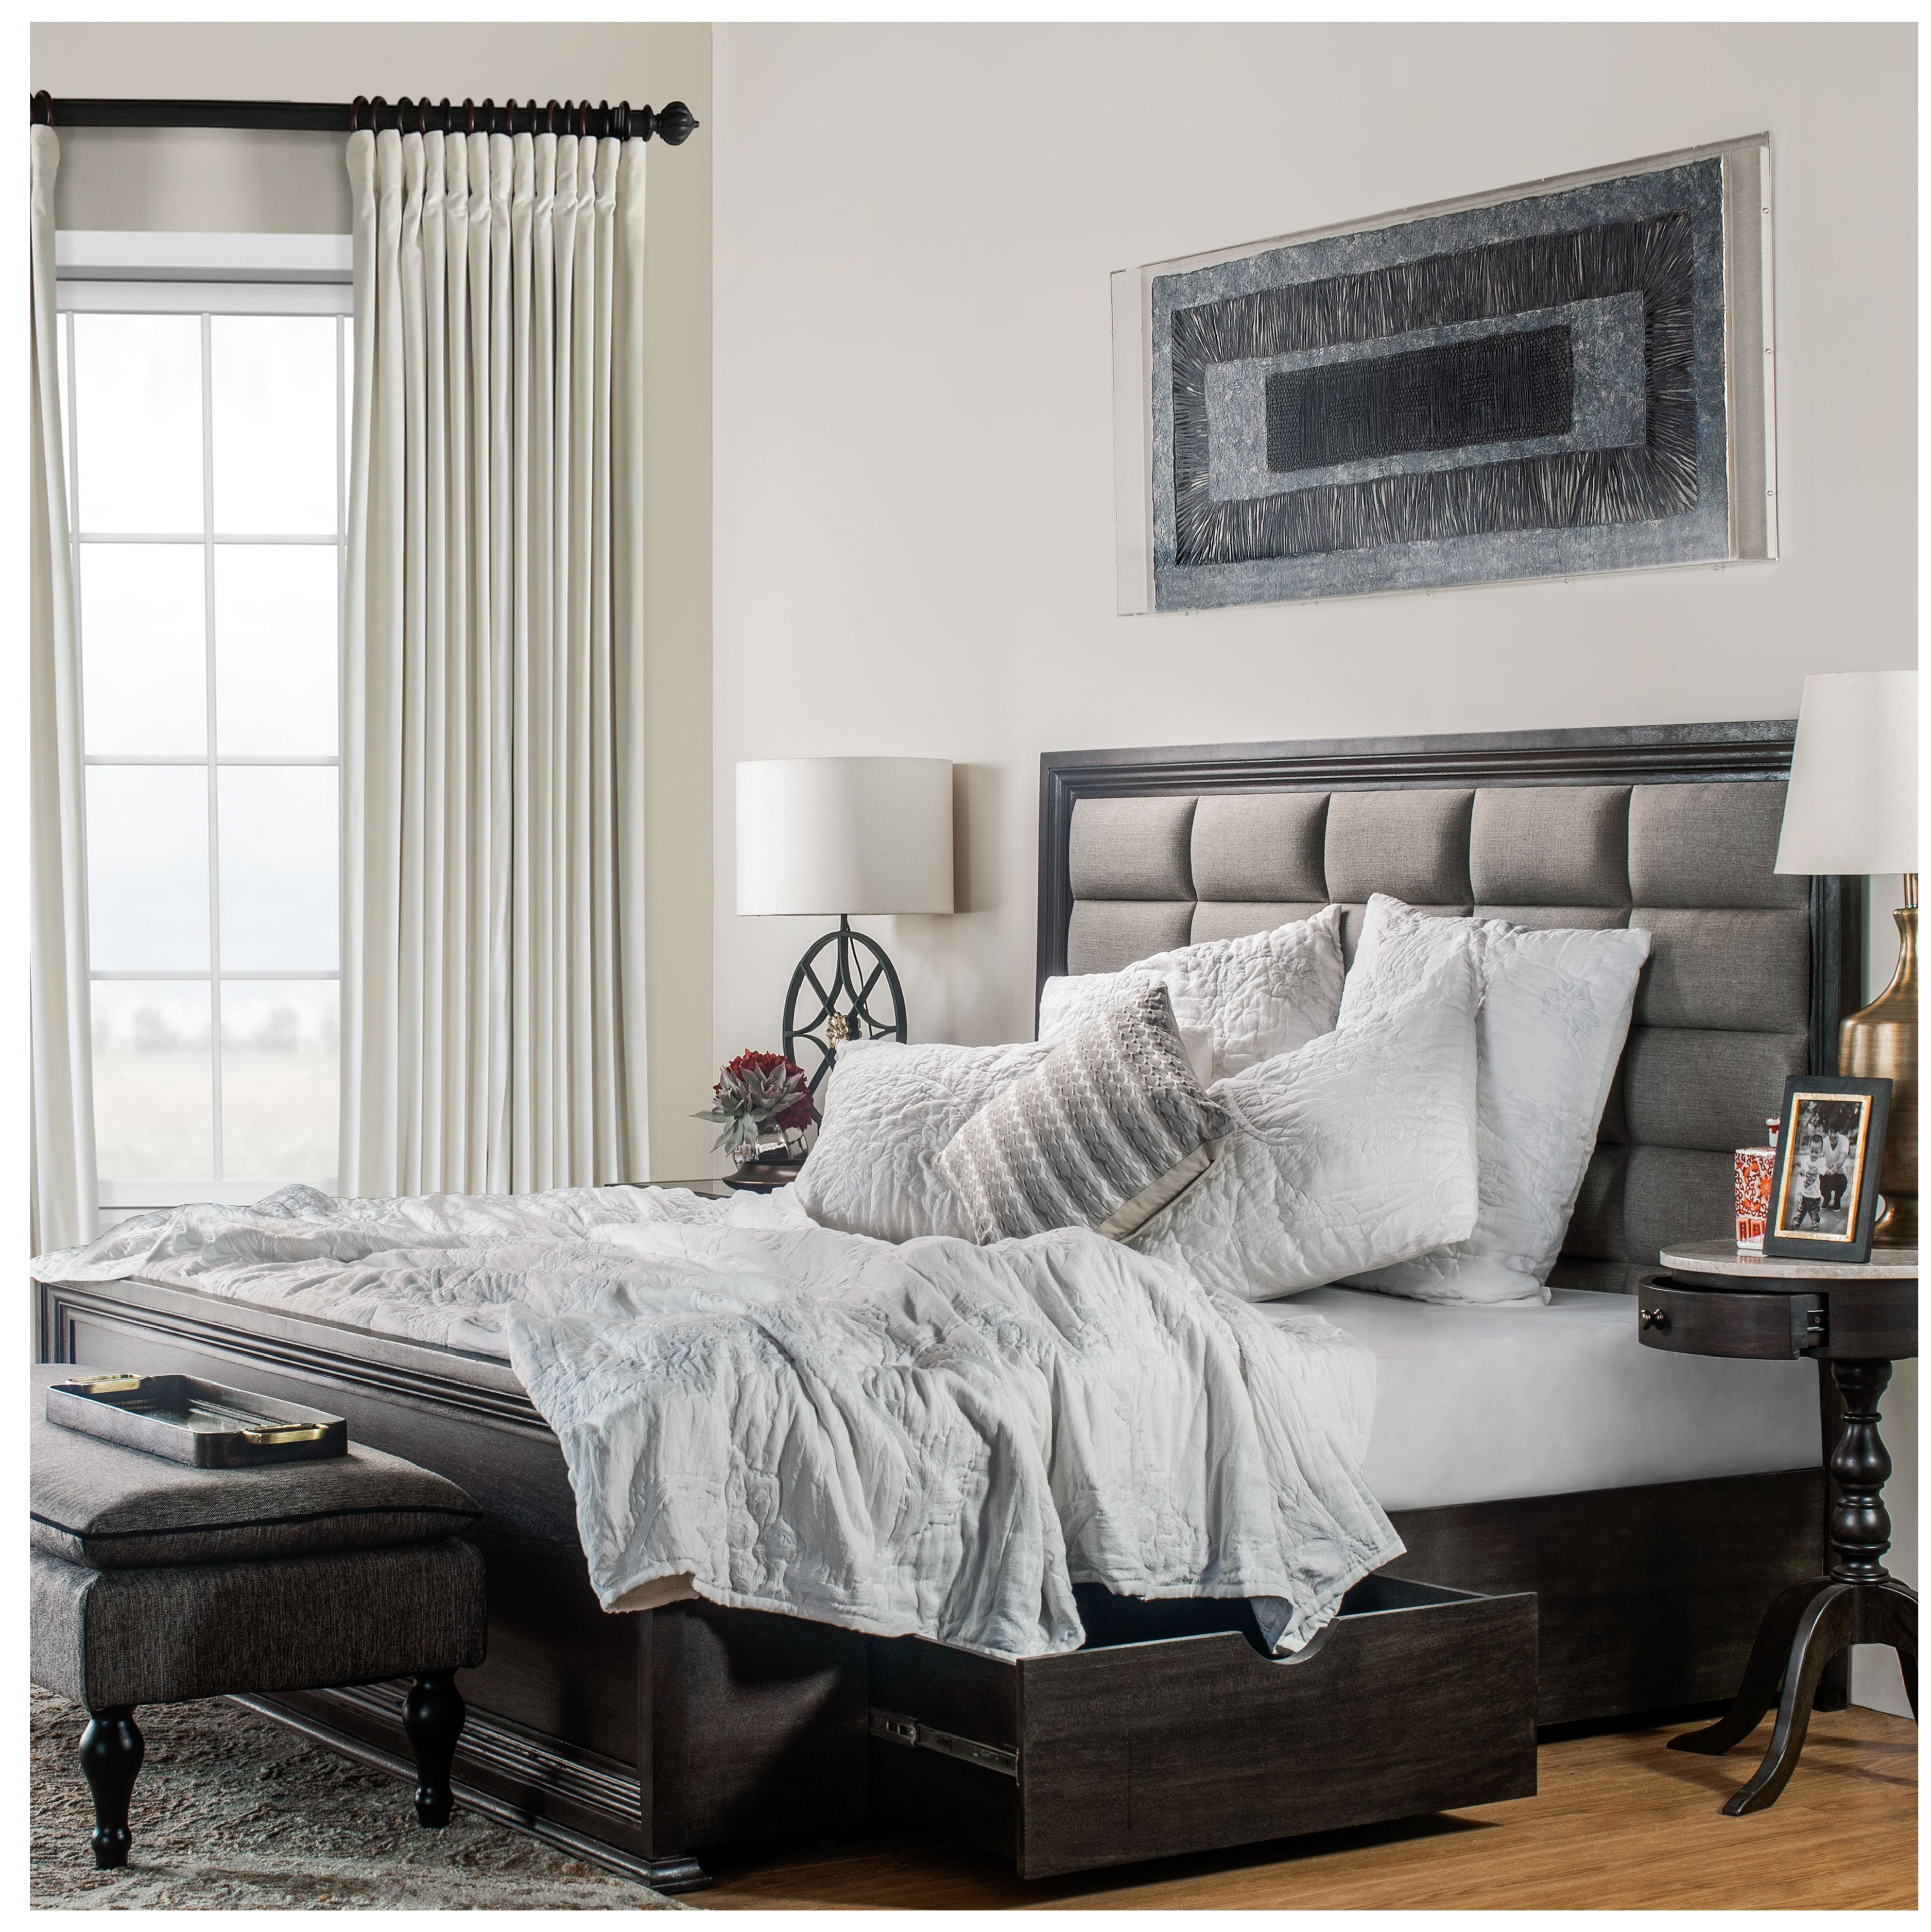 Hamptons Inspired Luxury Home Master Bedroom Robeson: Aptly Defining A Modern Home, Inspired By European Culture